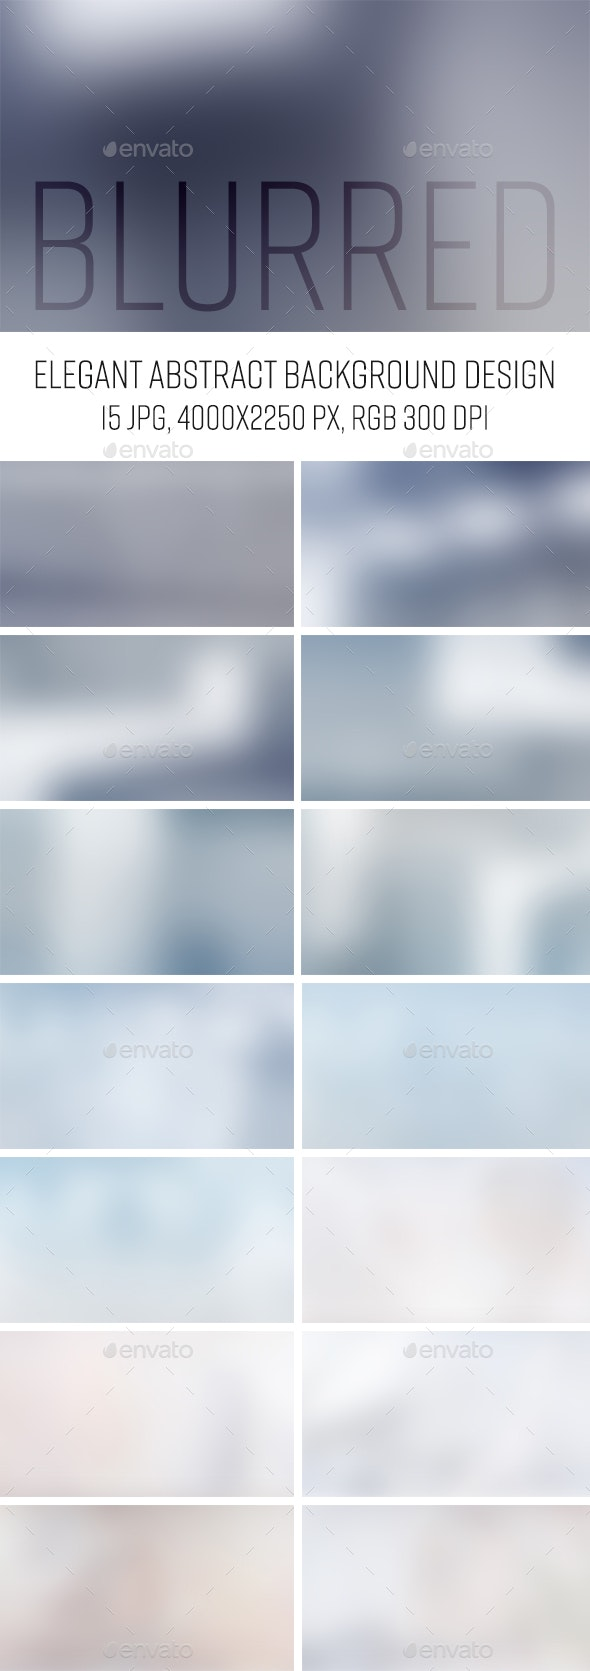 Elegant Blur Backgrounds - Abstract Backgrounds